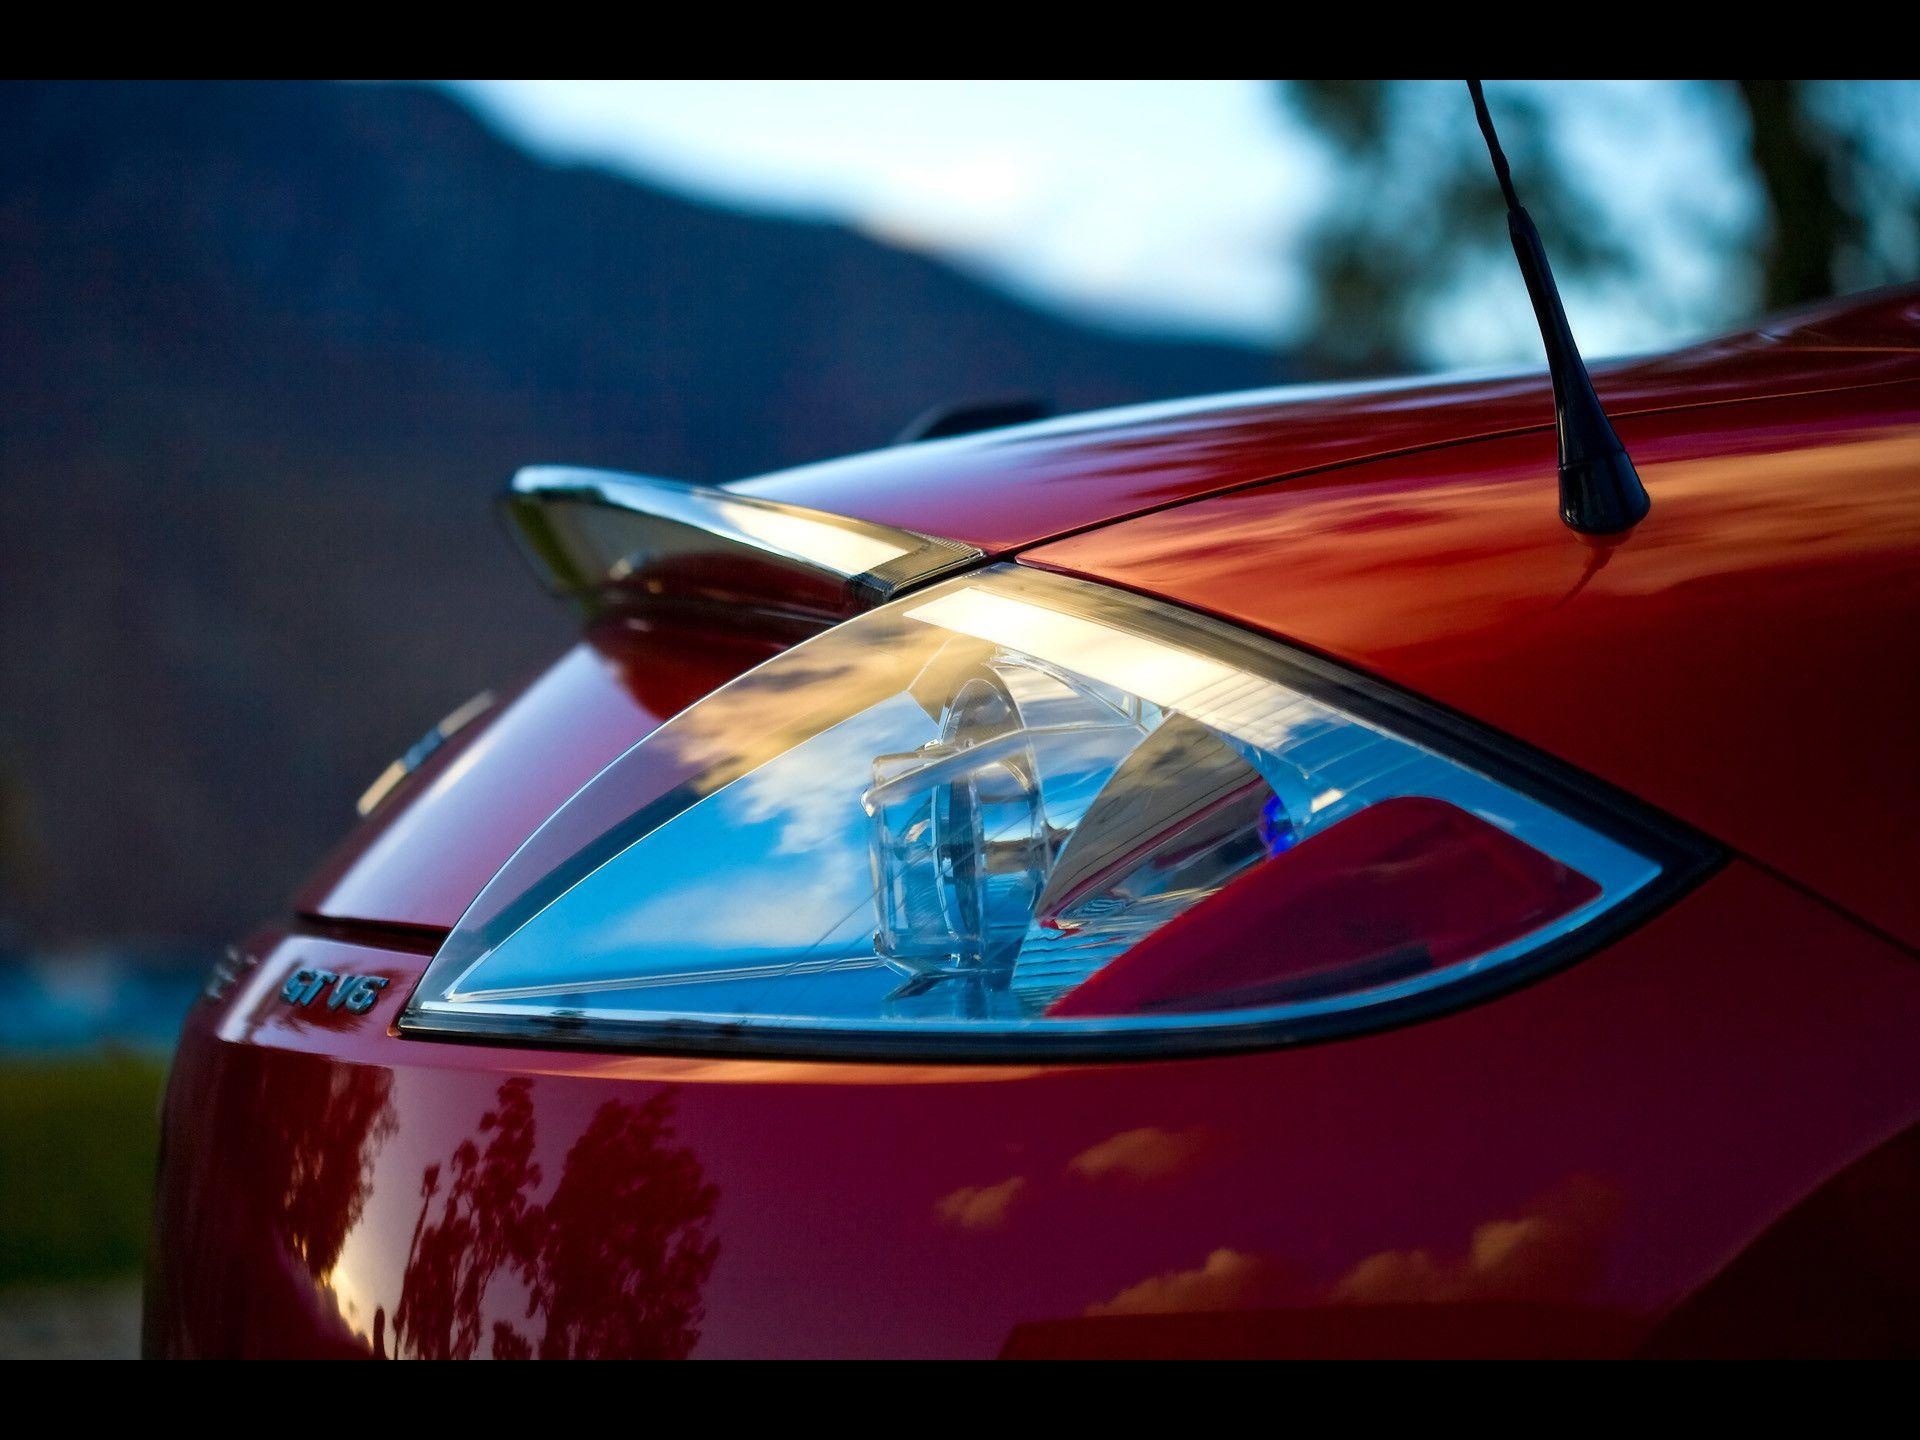 2009 Mitsubishi Eclipse Spyder gt Rear Light Wallpapers